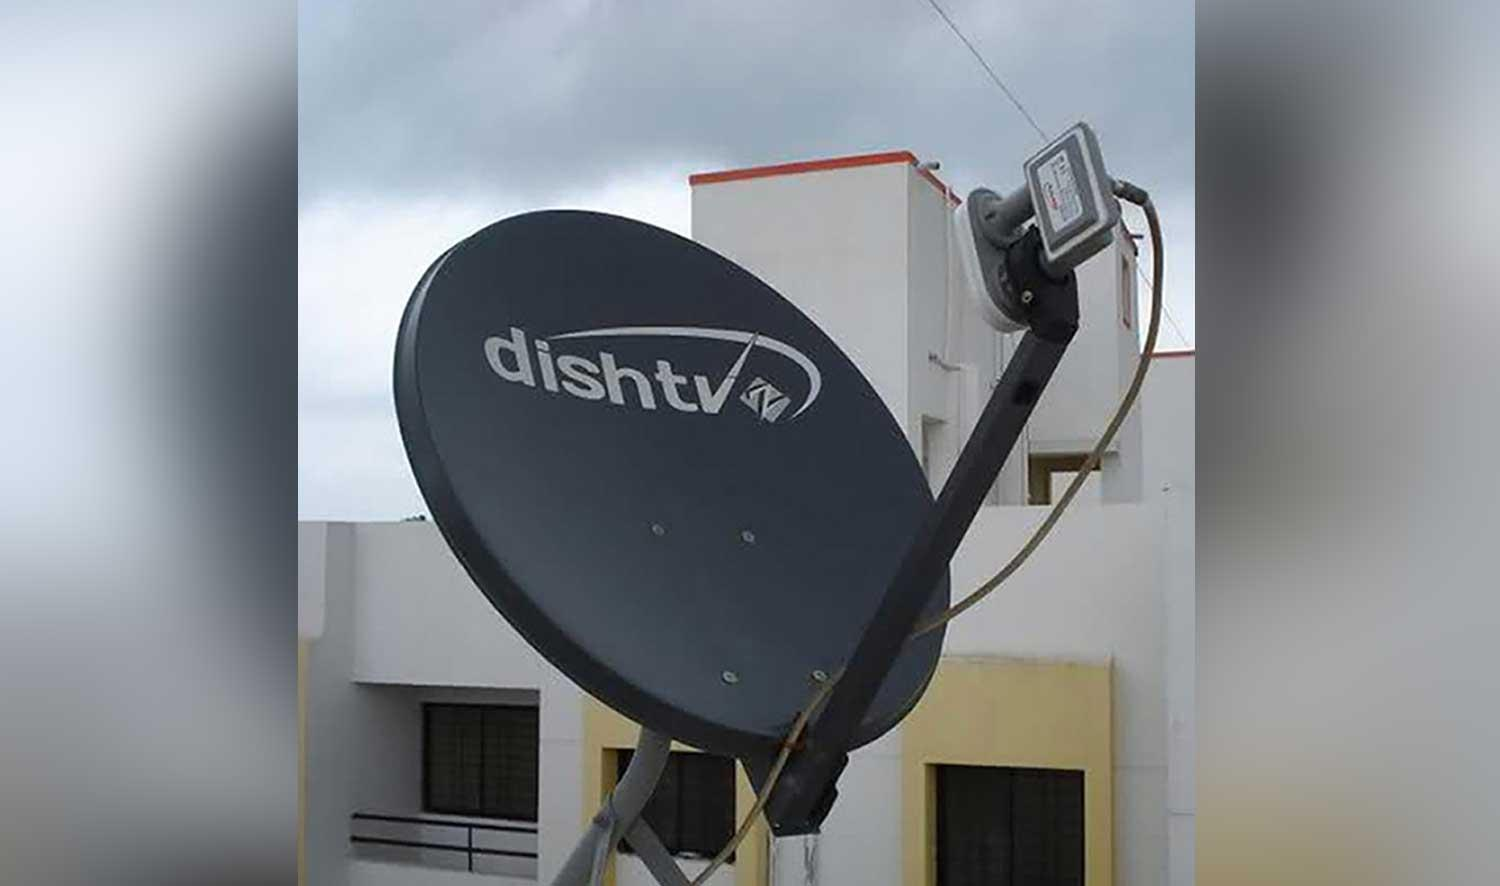 Dish TV India, Tata Elxsi collaborate to launch 'Orbit'